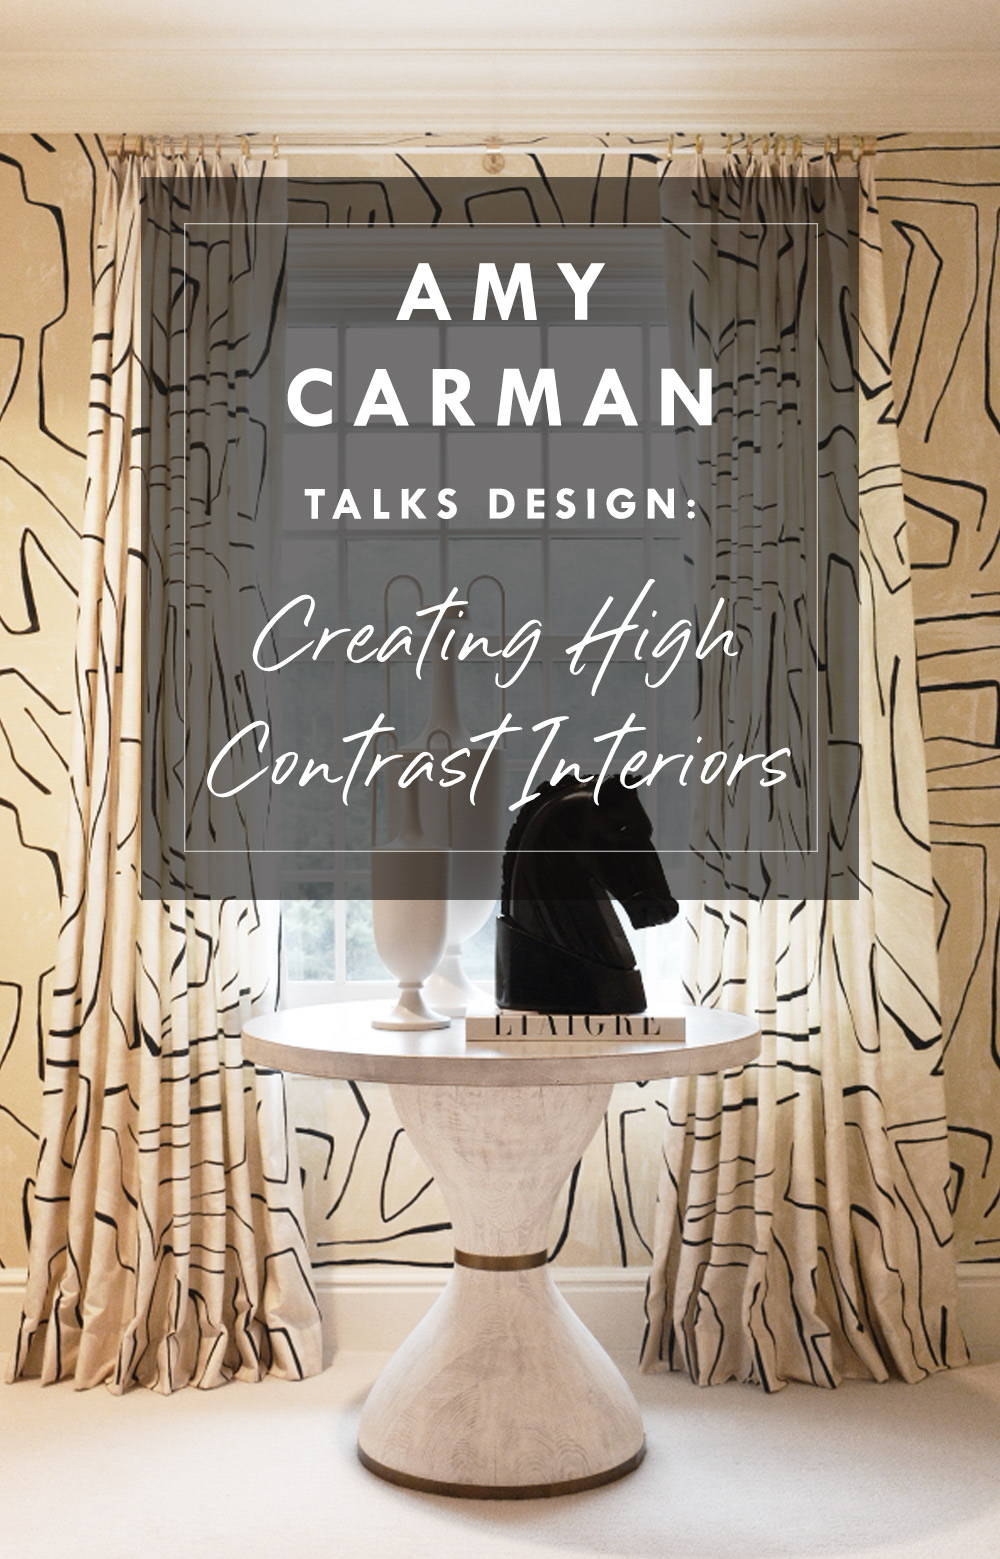 Creating High Contrast Interiors by Amy Carman Design